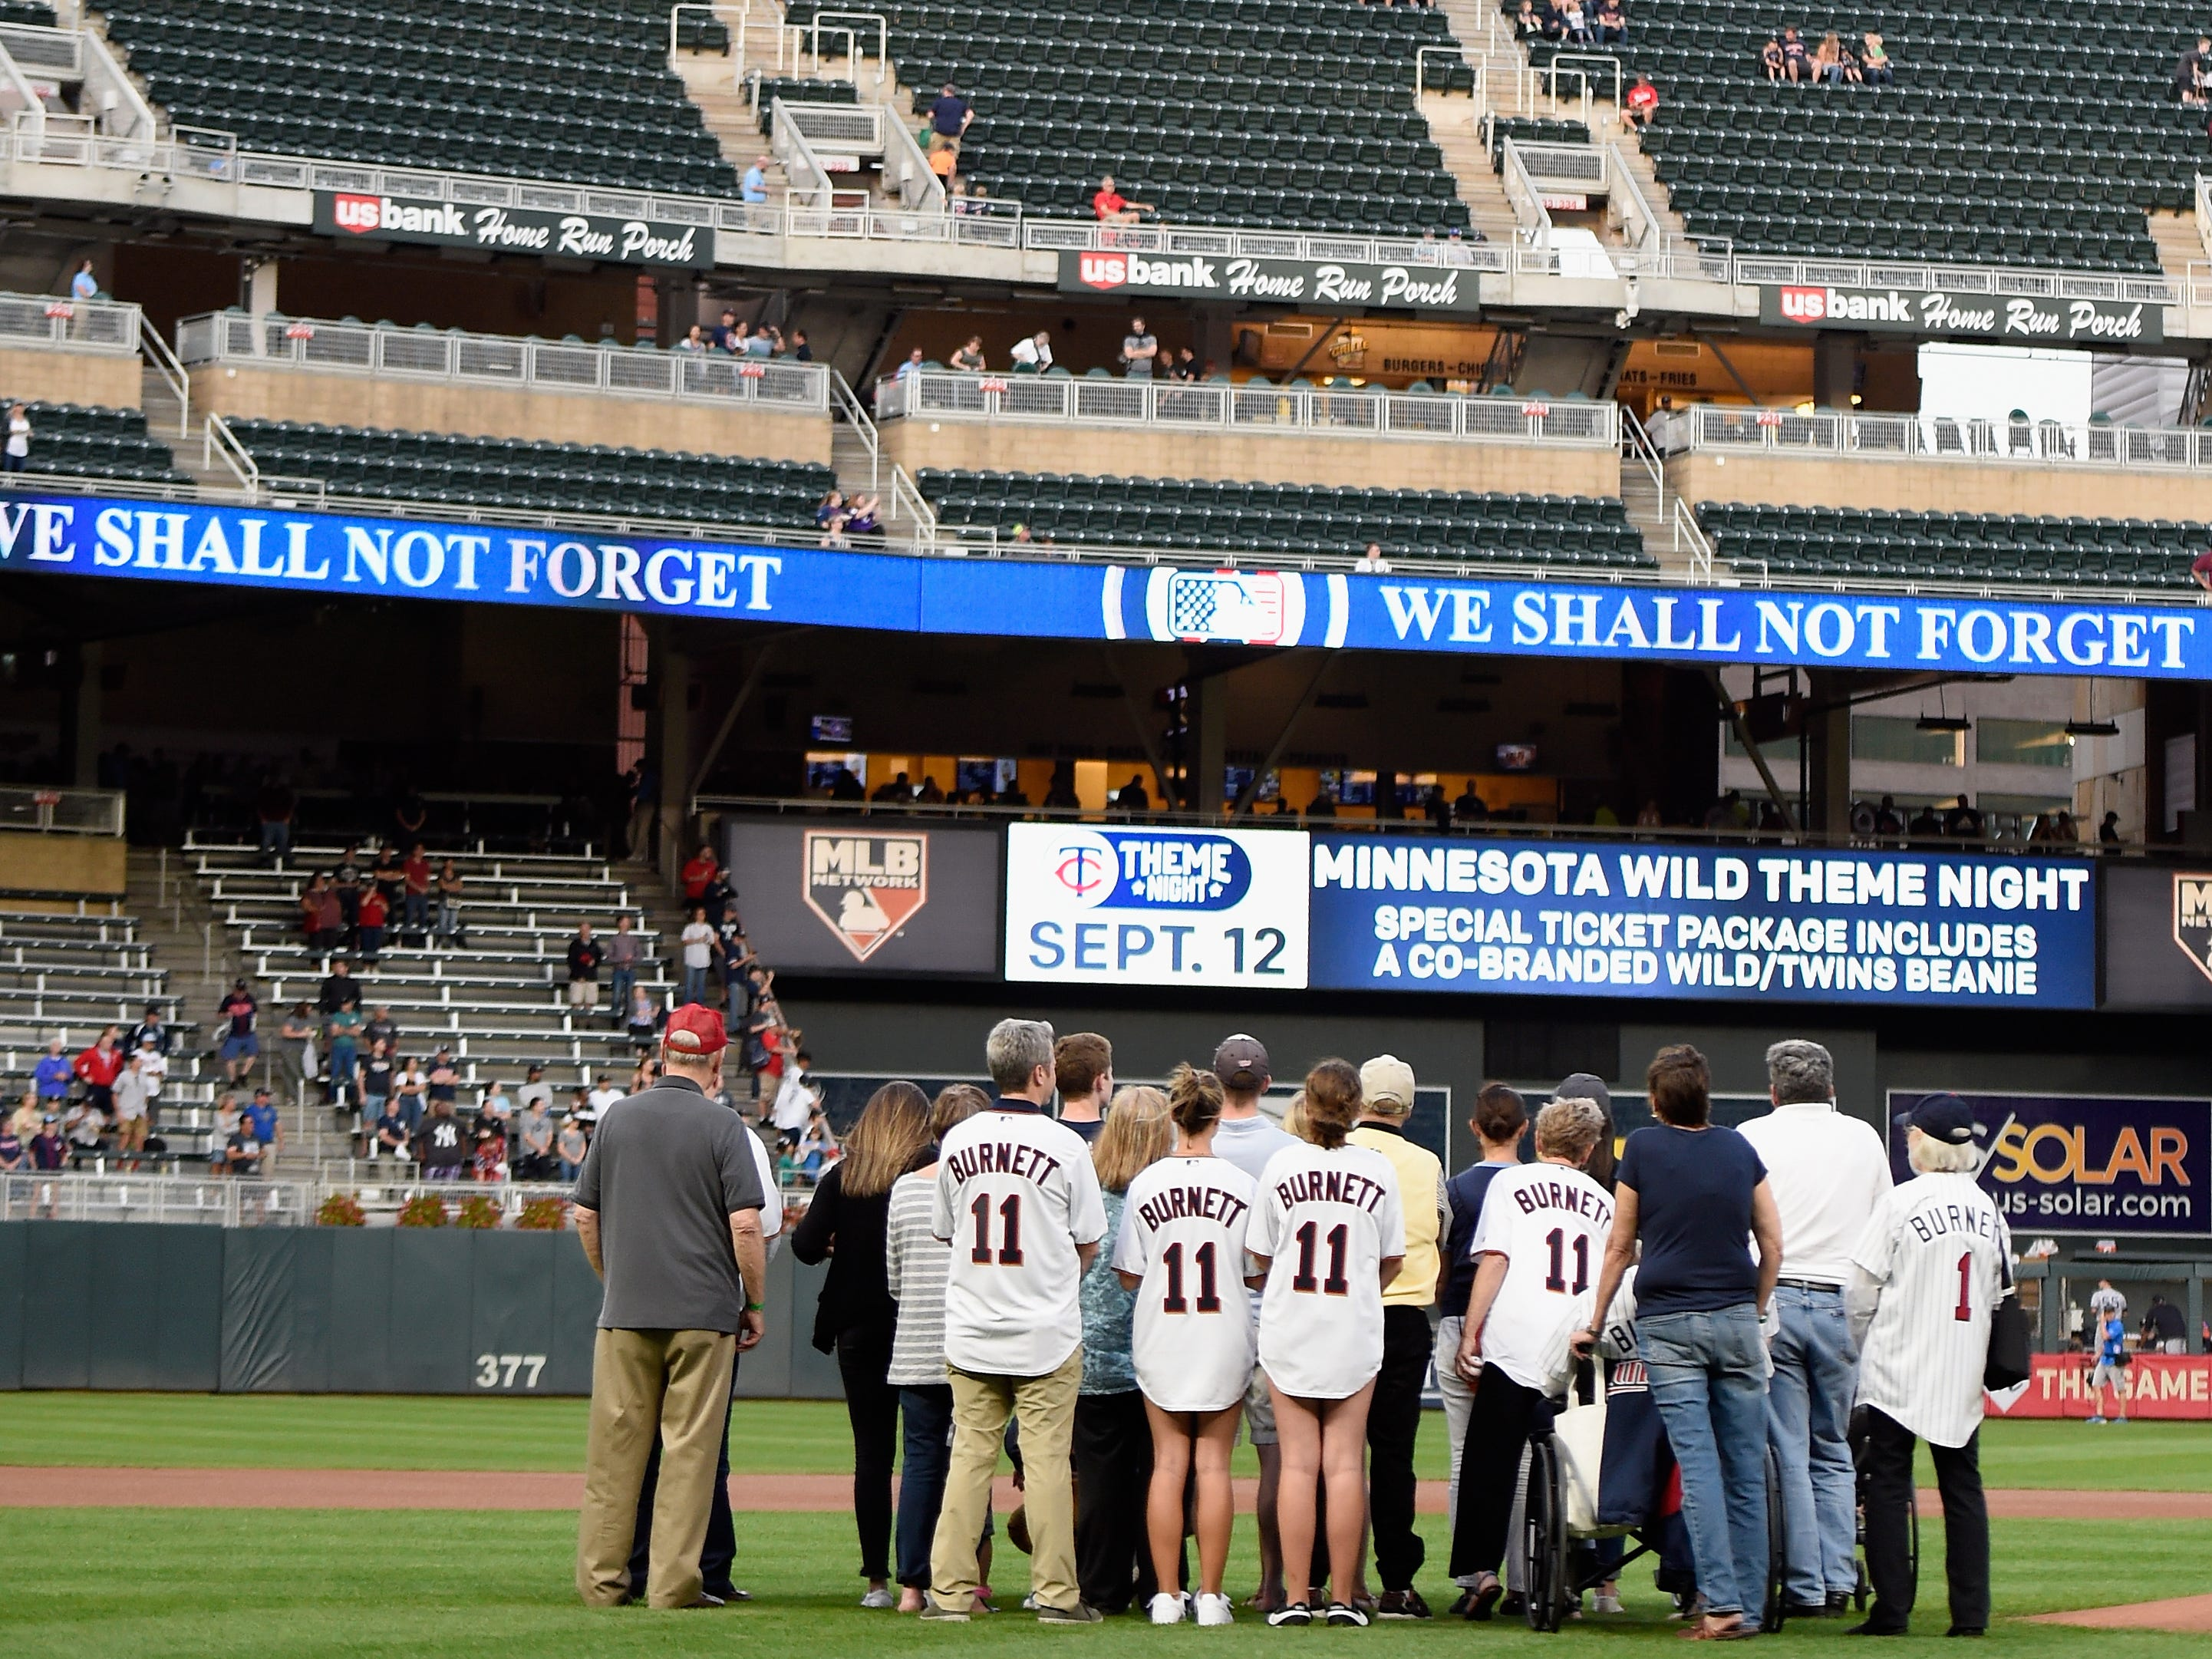 The family of United flight 93 passenger Tom Burnett watch a memorial video at Target Field in Minneapolis.